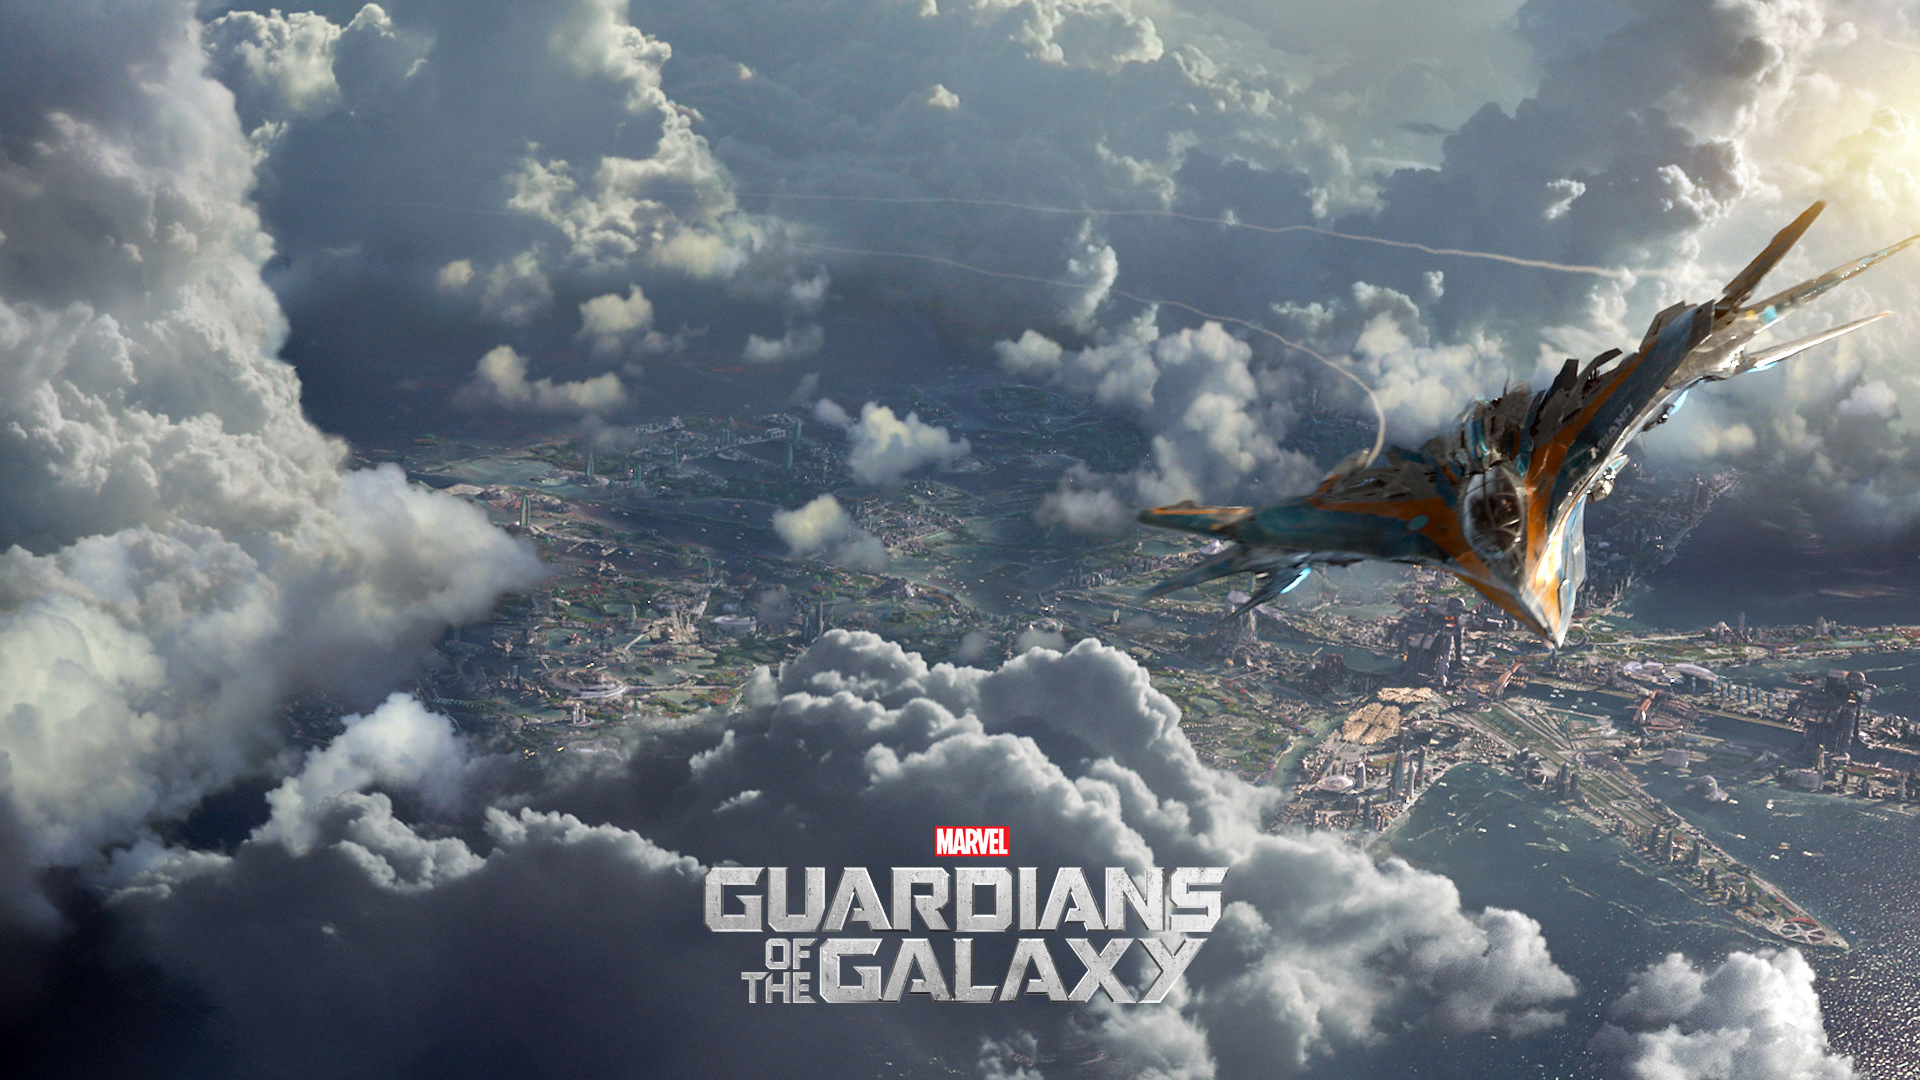 Guardians of the Galaxy wallpaper 7